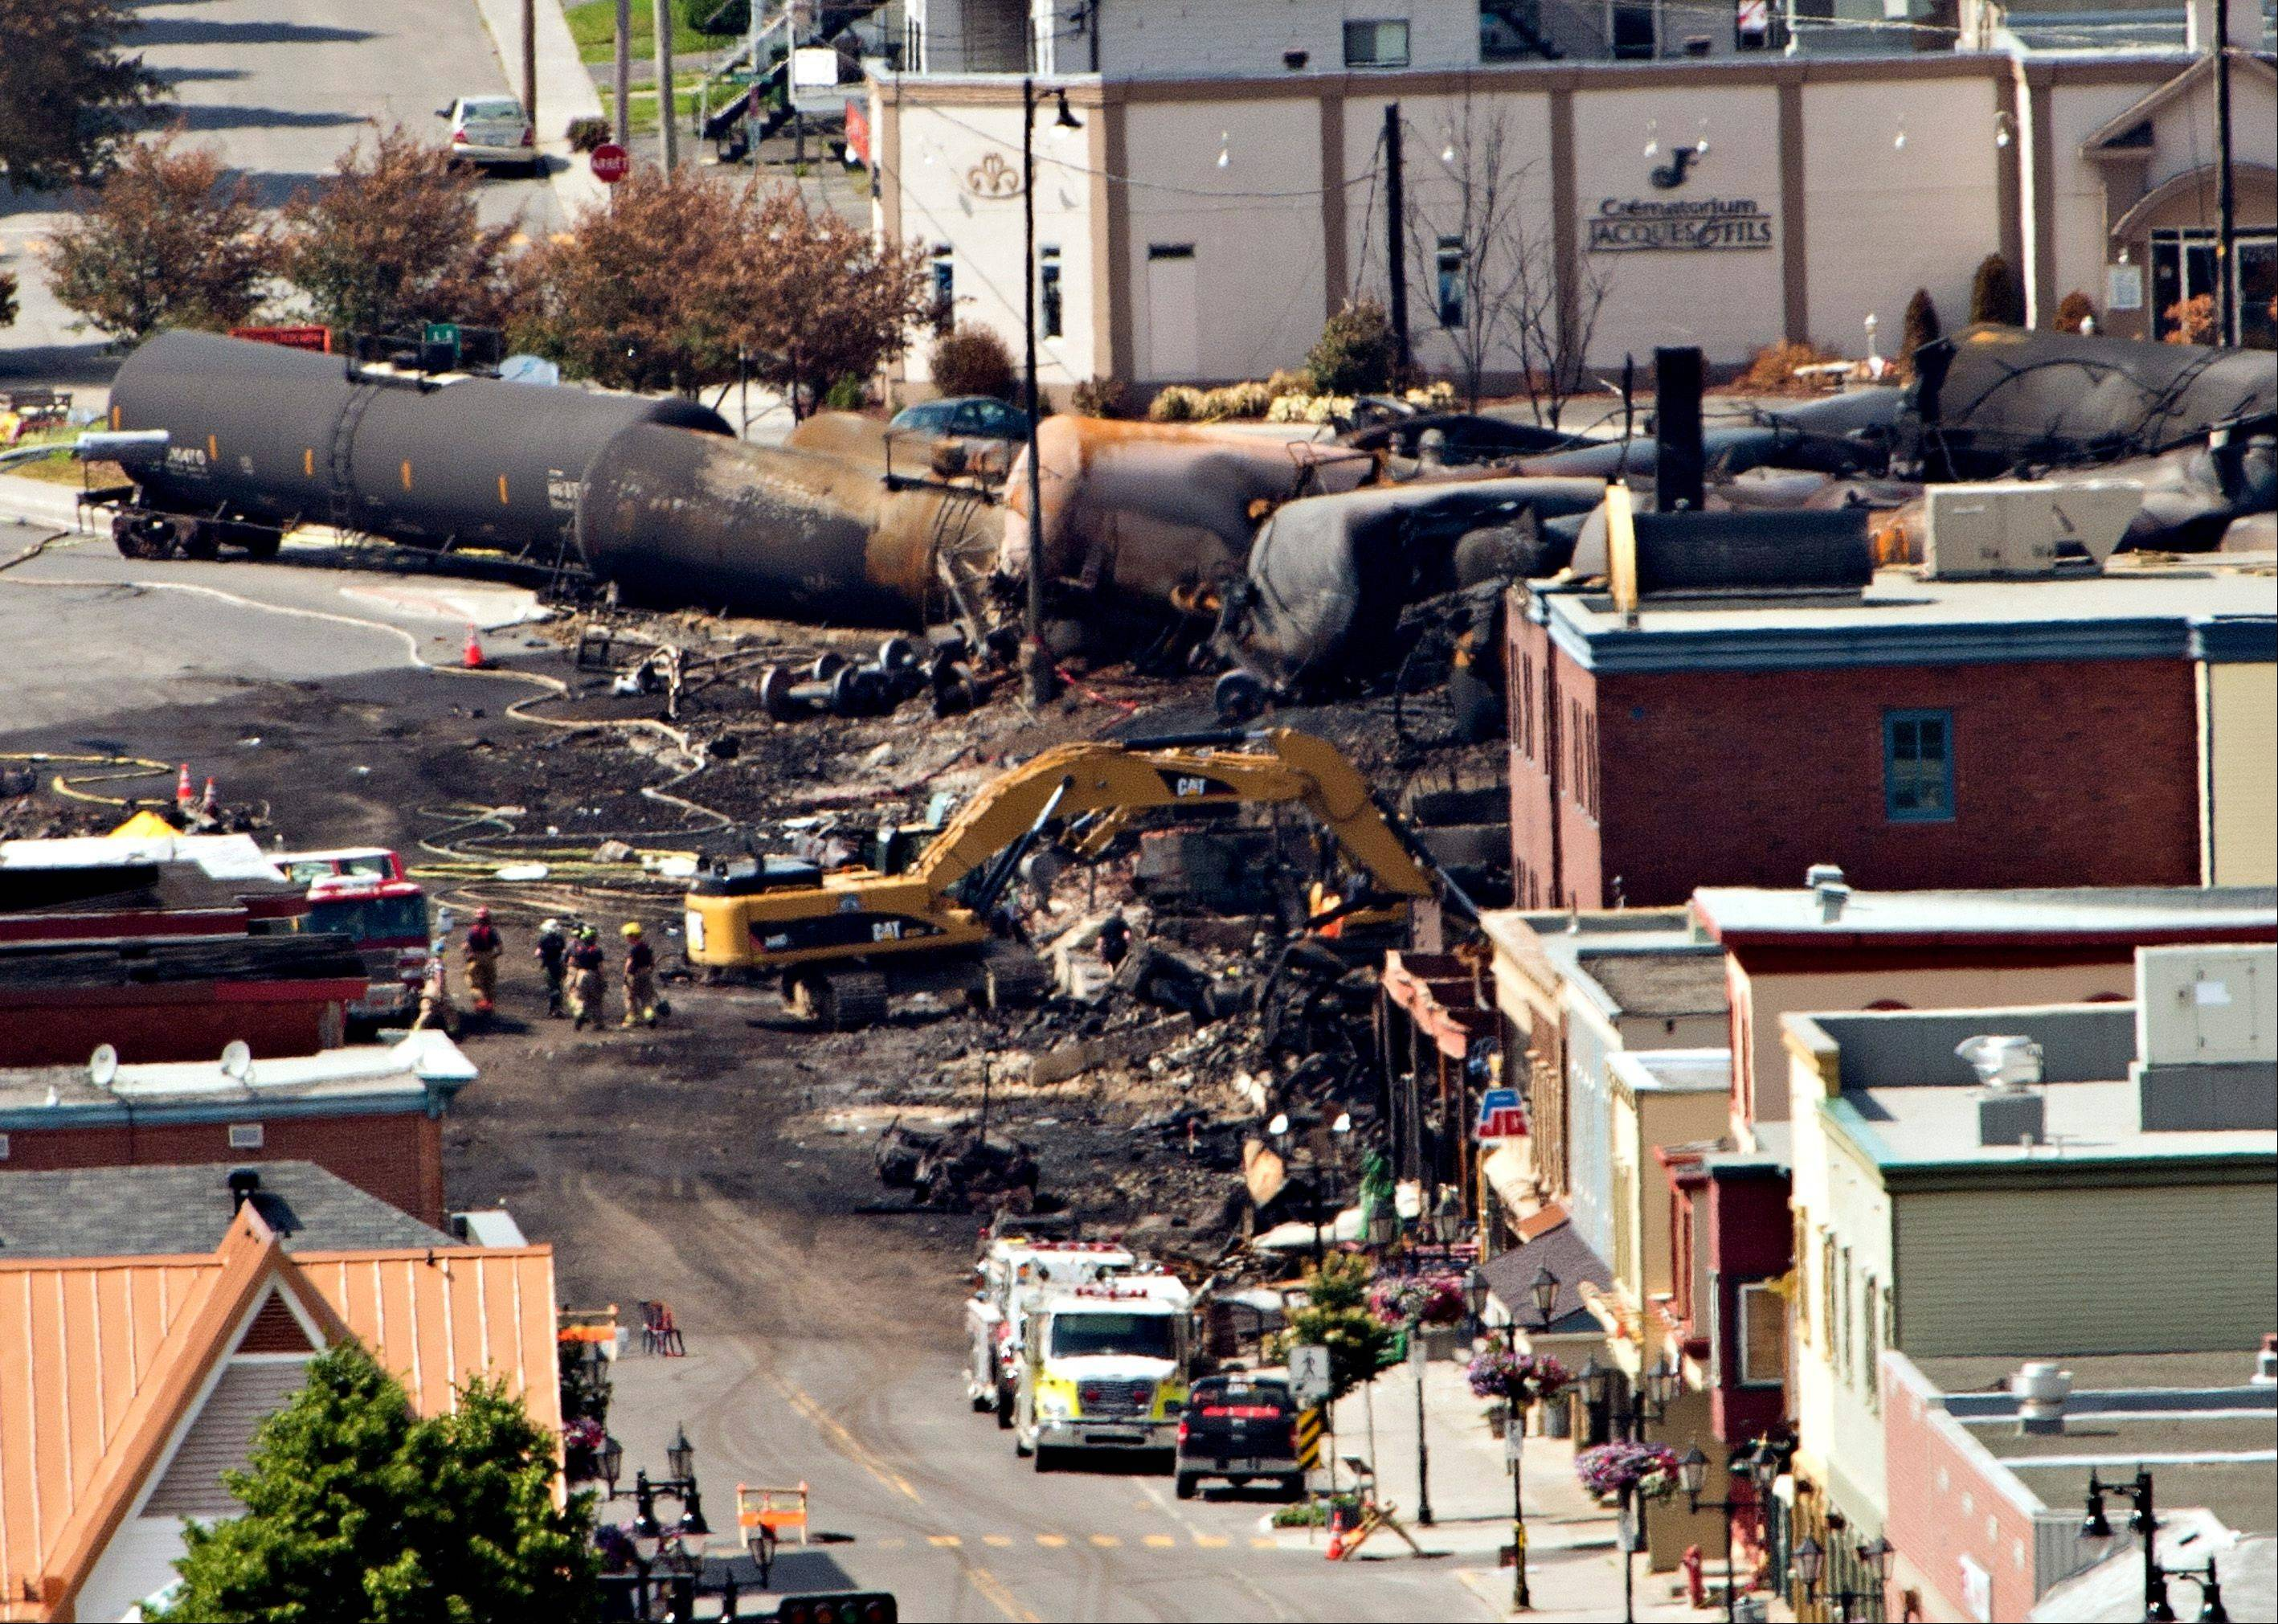 Searchers dig through the rubble for victims in Lac-Megantic, Quebec, Monday, after a train derailed, igniting tanker cars carrying crude oil early Saturday.